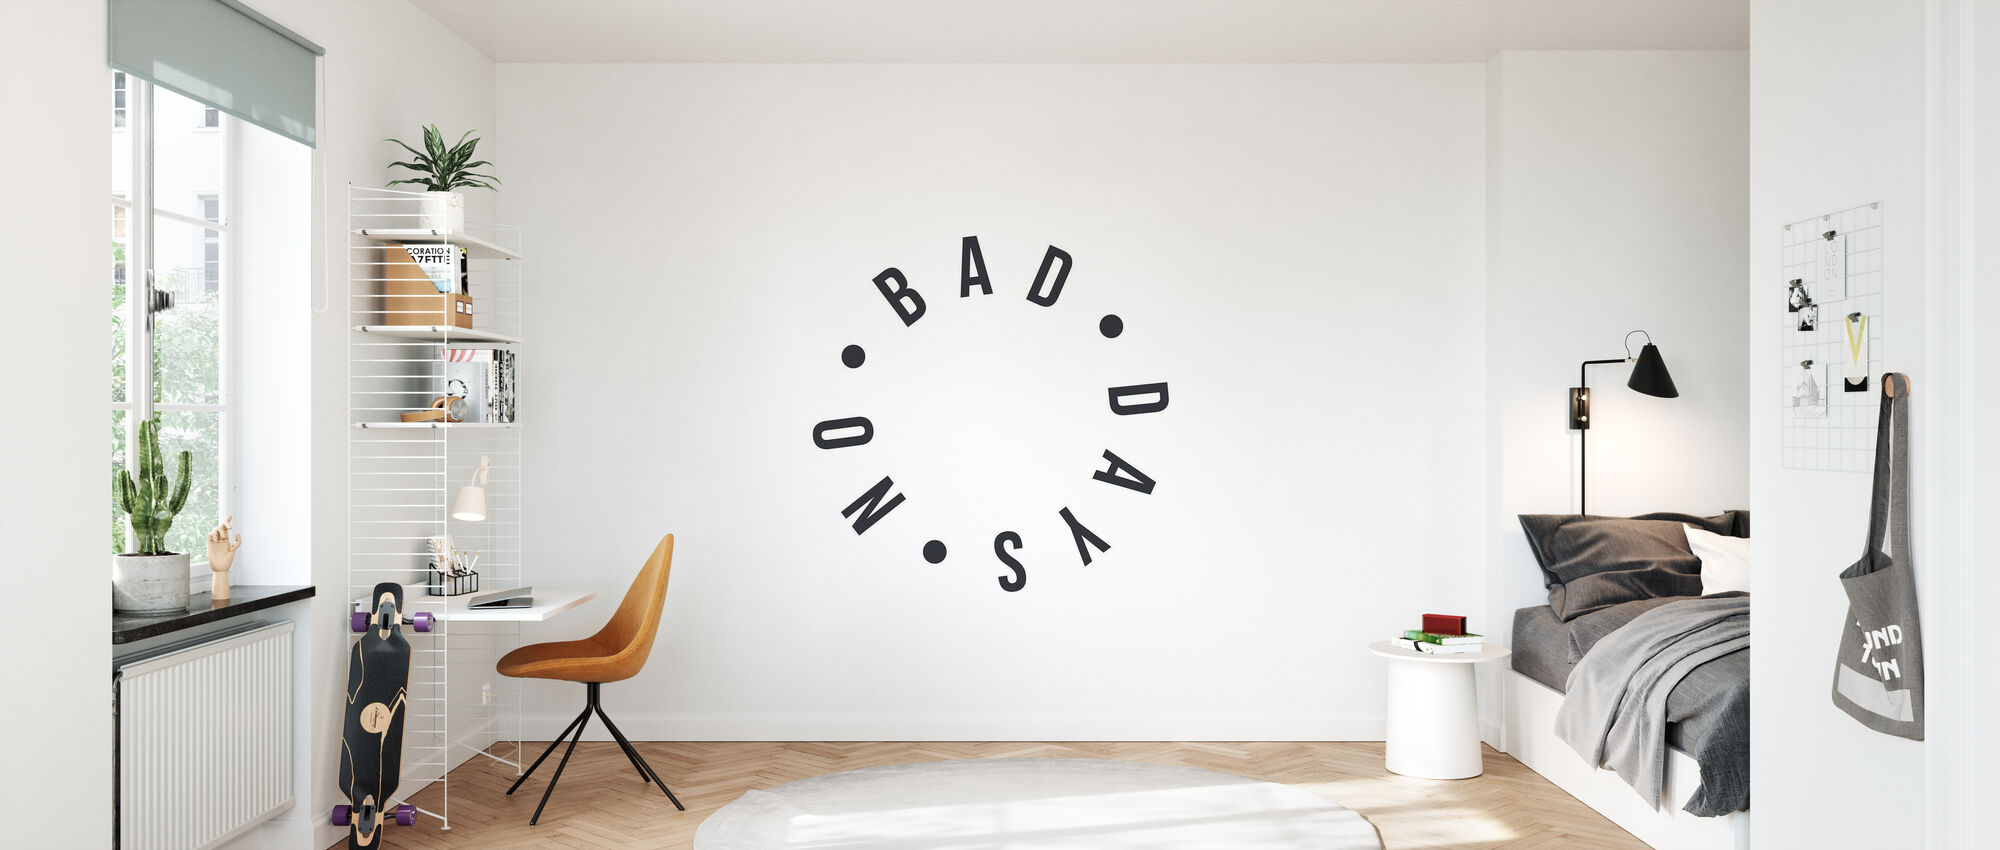 No Bad Days - Wallpaper - Kids Room